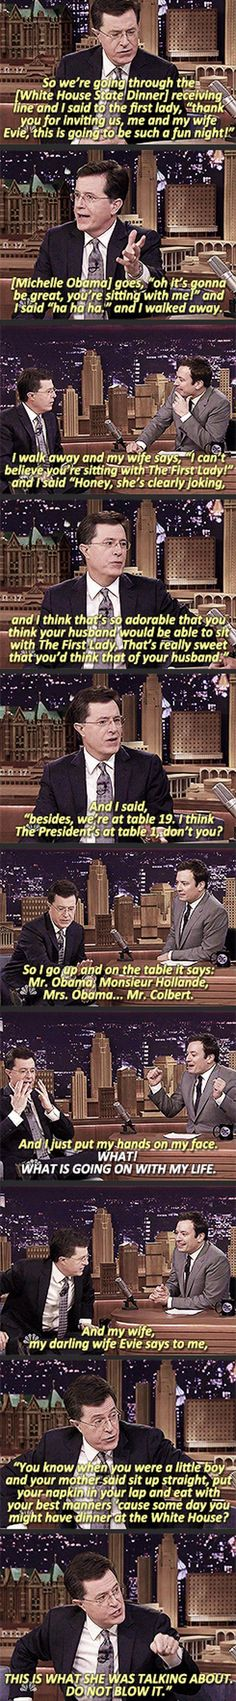 Hahaha Colbert is so great